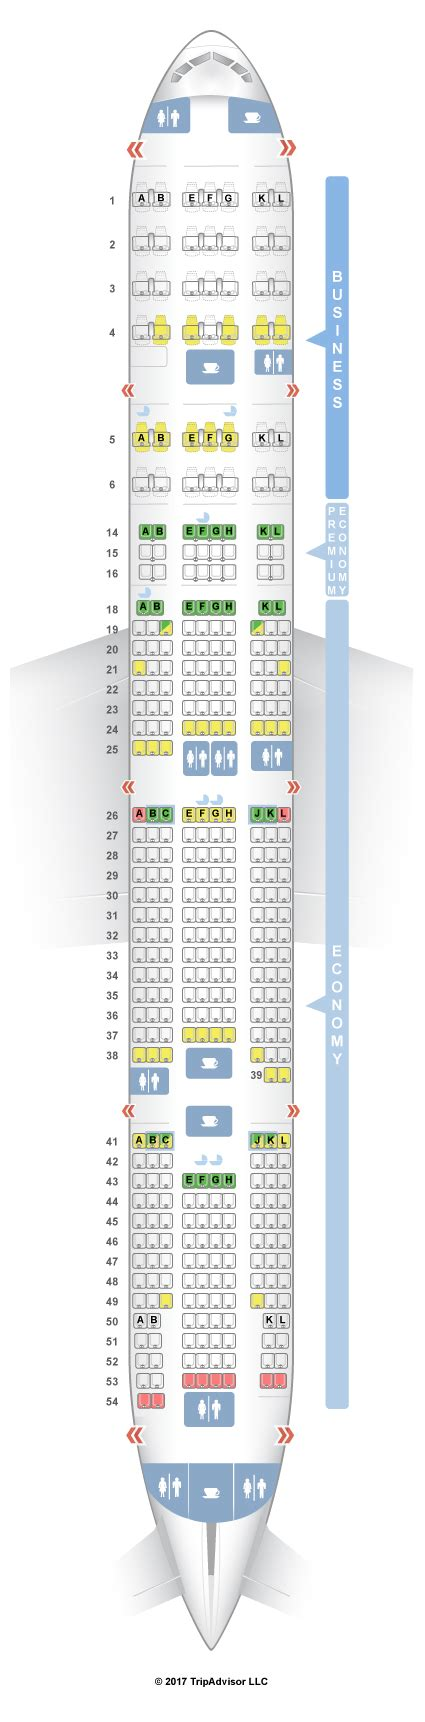 boeing 777 300er sieges seatguru seat map air boeing 777 300er 77w three